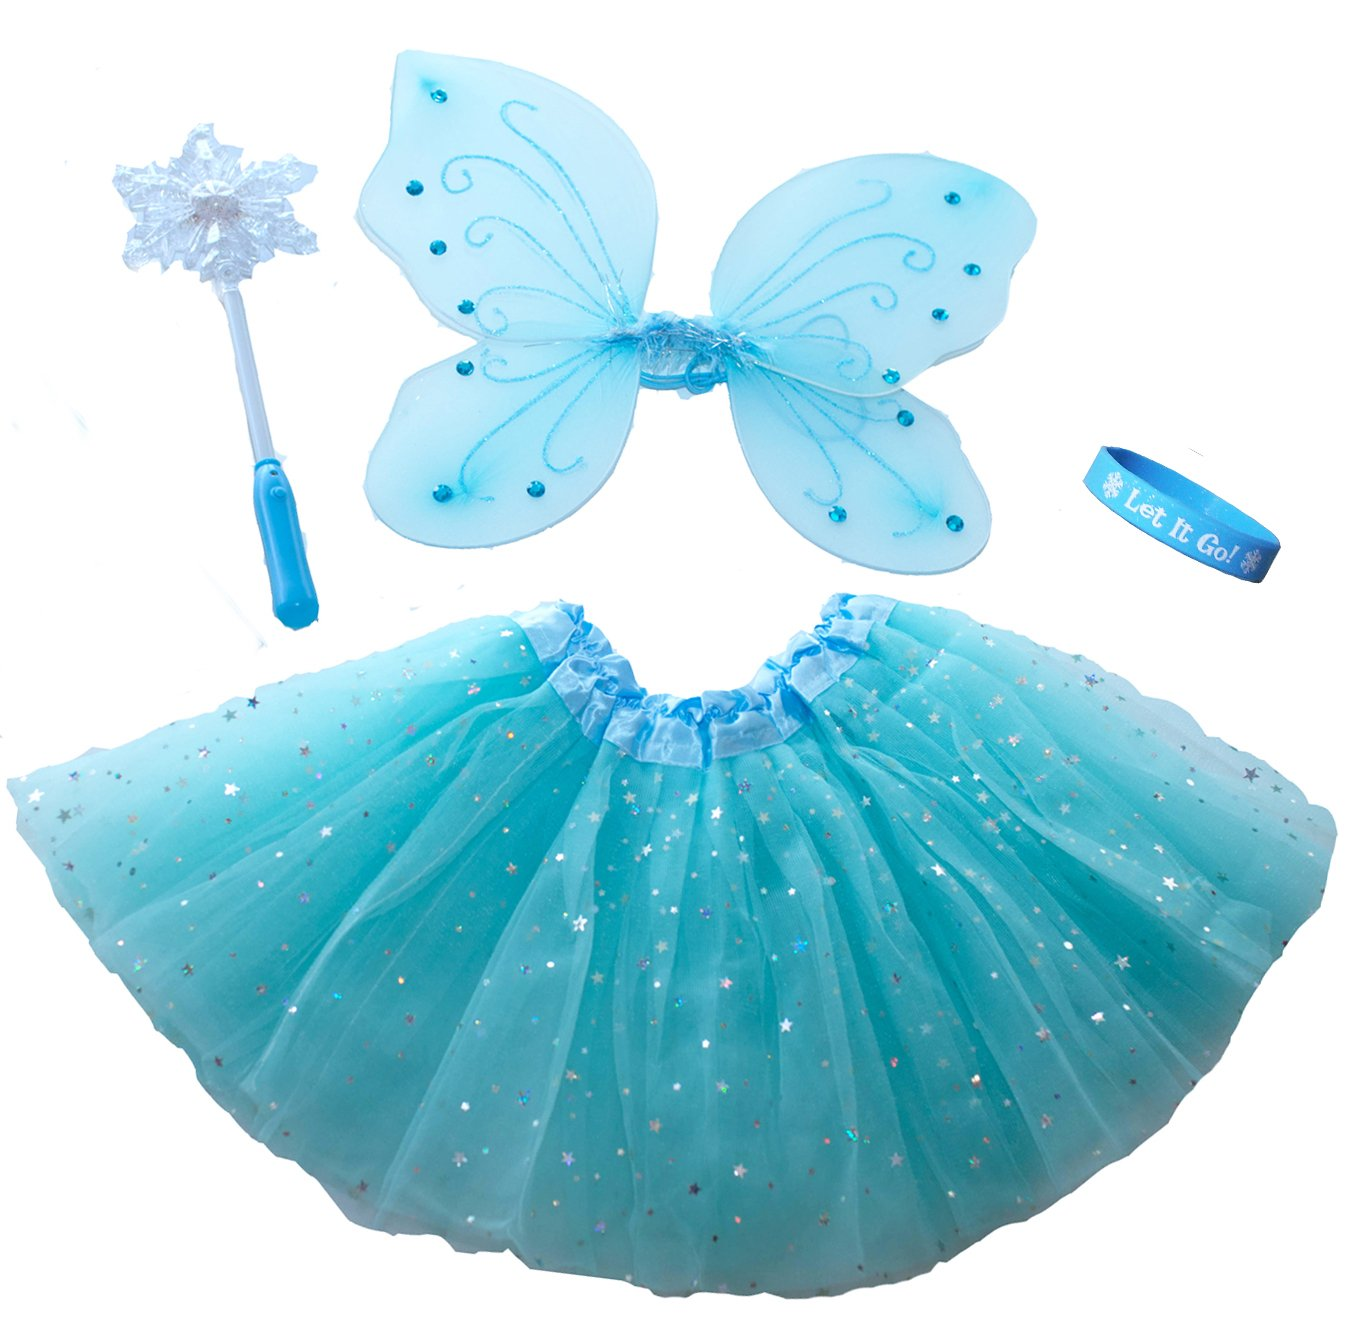 Frozen Inspired Fairy Princess Set Light Up Snowflake Wand Let It Go Band